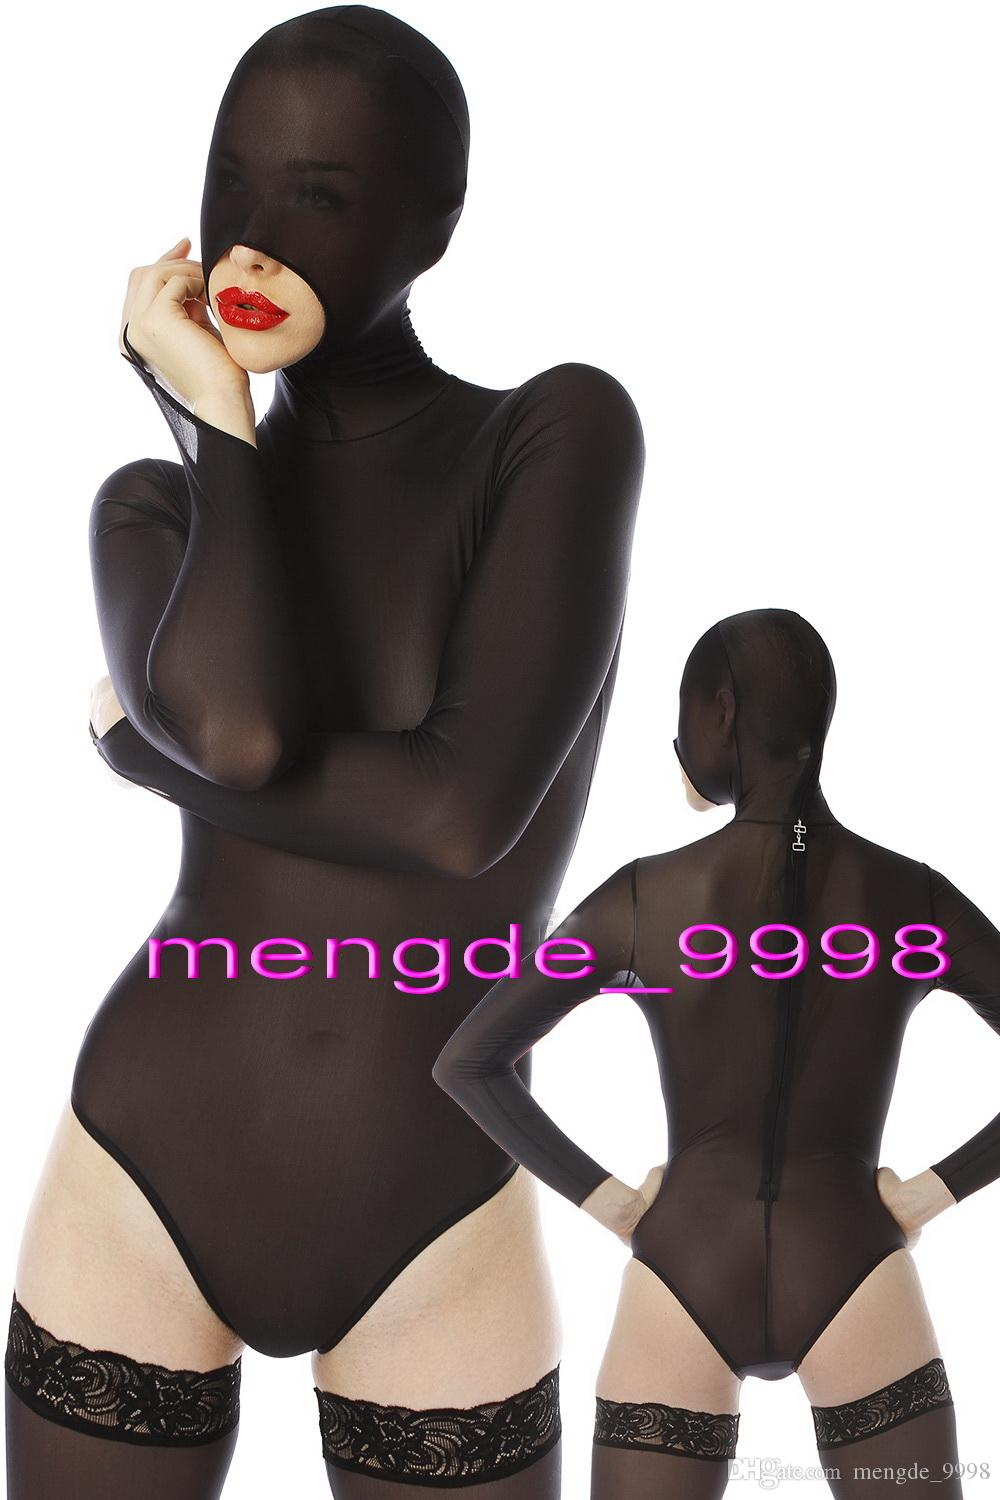 Black Spandex Silk Short Catsuit Costumes Unisex Sexy Short Body Suit Costumes Unisex Bodysuit Fancy Dress Party Cosplay Costumes M301